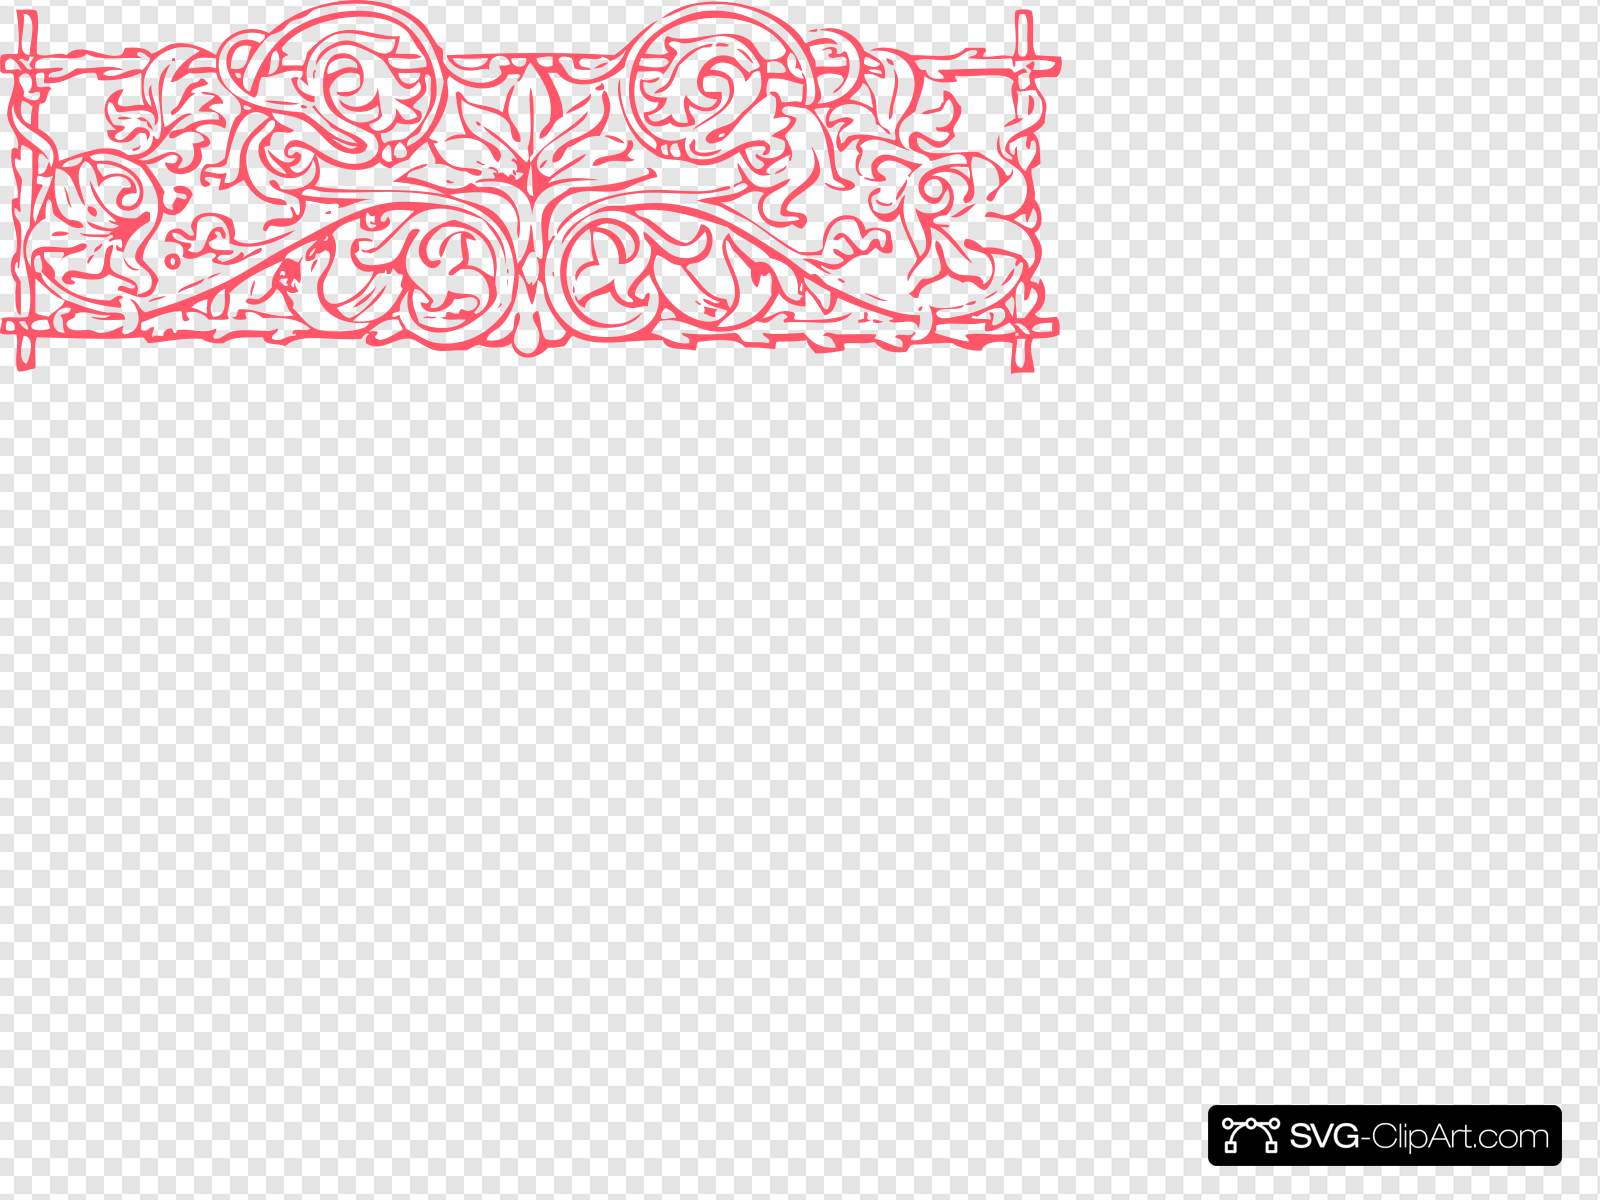 Pink Trellis Clip art, Icon and SVG - SVG Clipart graphic free download